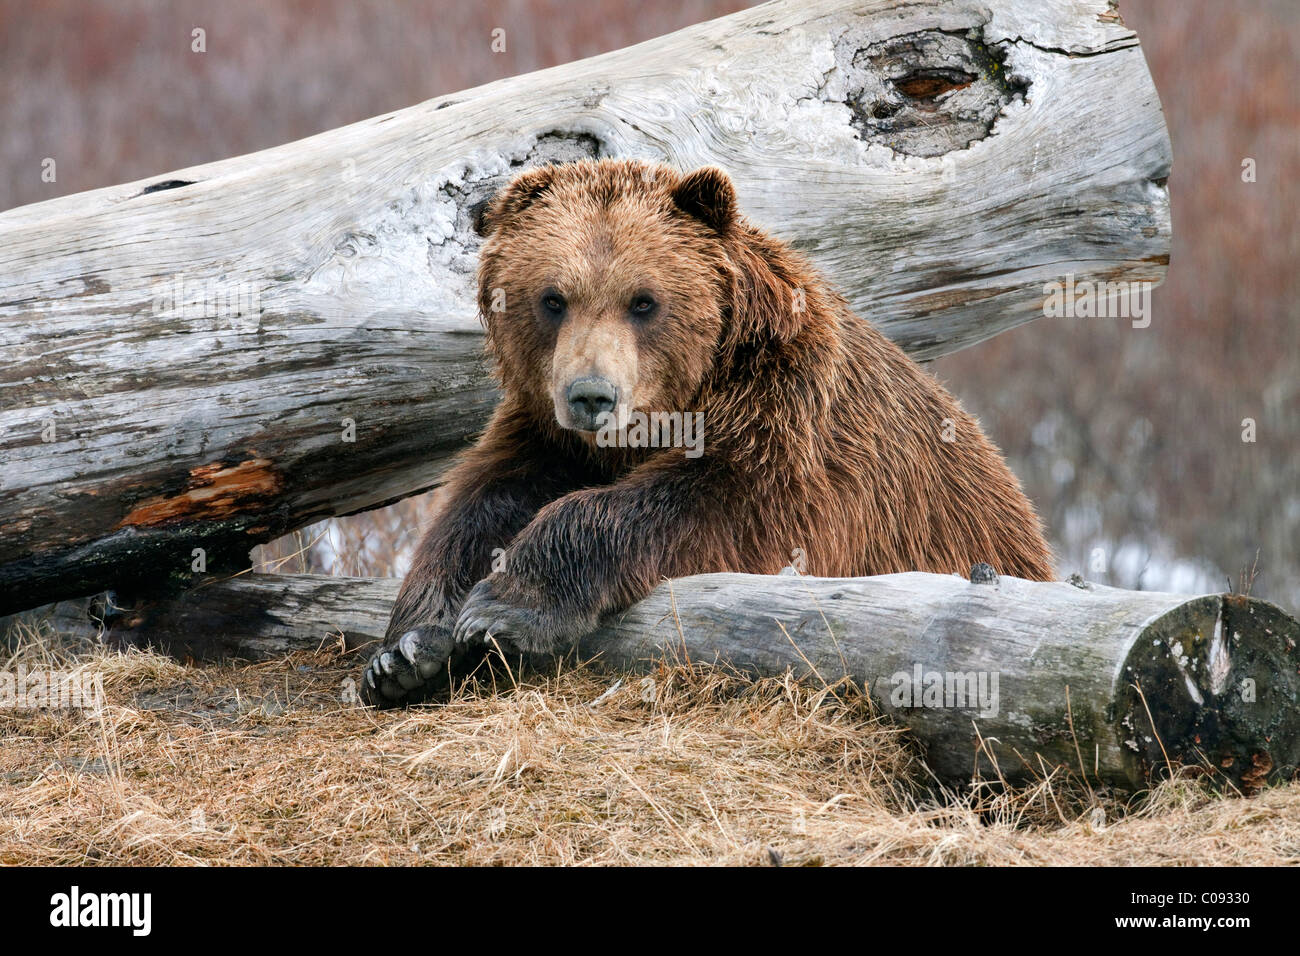 An adult Brown bear rests on a log at the Alaska Wildlife Conservation Center near Portage, Southcentral Alaska, - Stock Image